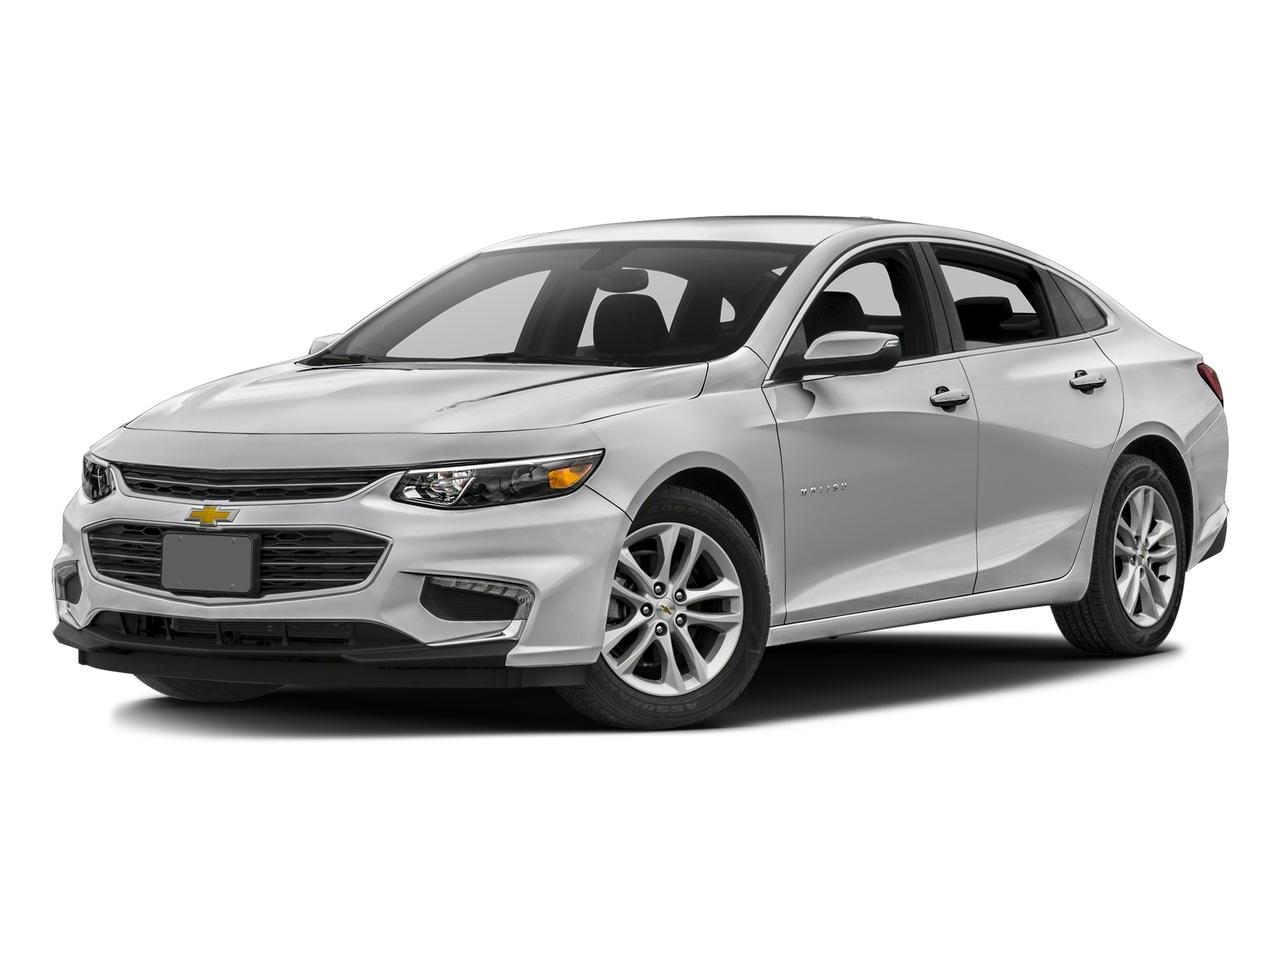 2017 Chevrolet Malibu Vehicle Photo in Massena, NY 13662